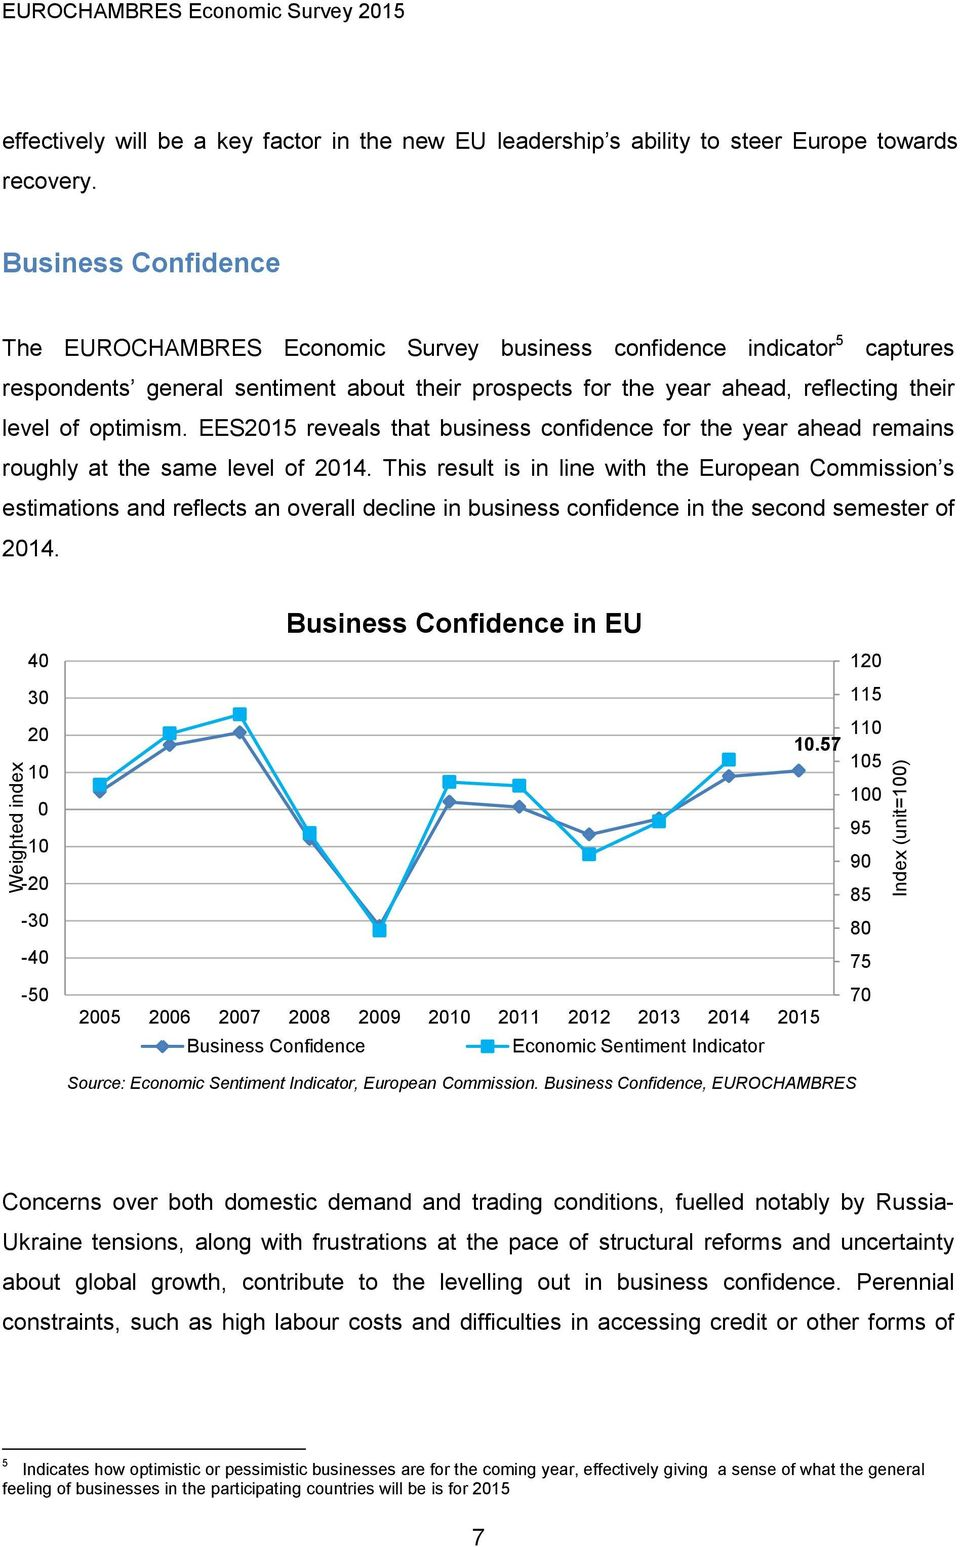 optimism. EES2015 reveals that business confidence for the year ahead remains roughly at the same level of 2014.